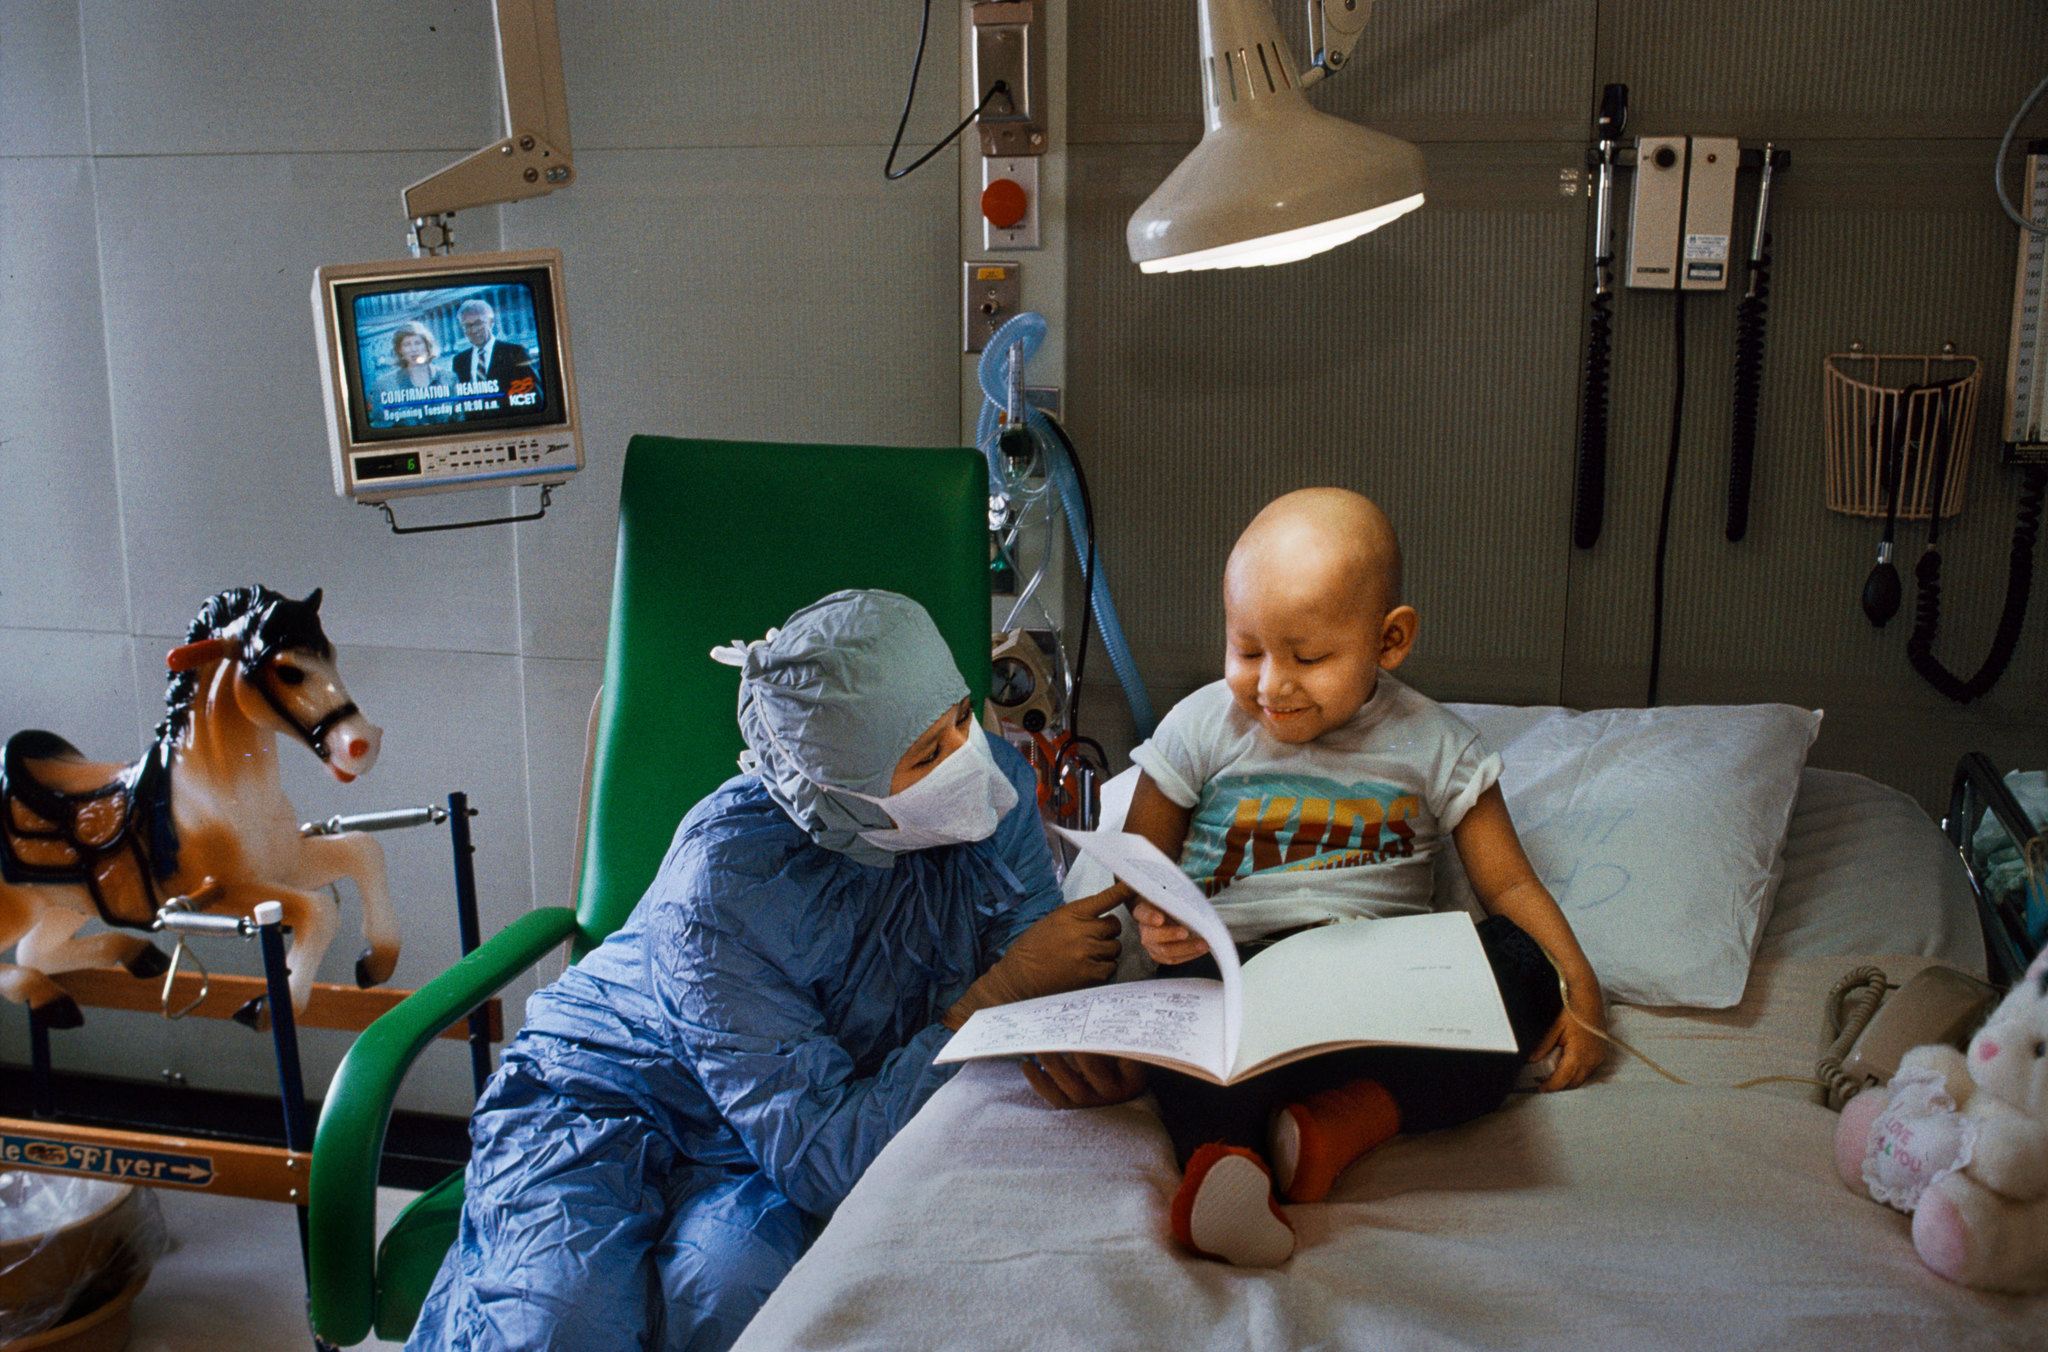 En un hospital de USA. Foto: Steven McCurry.